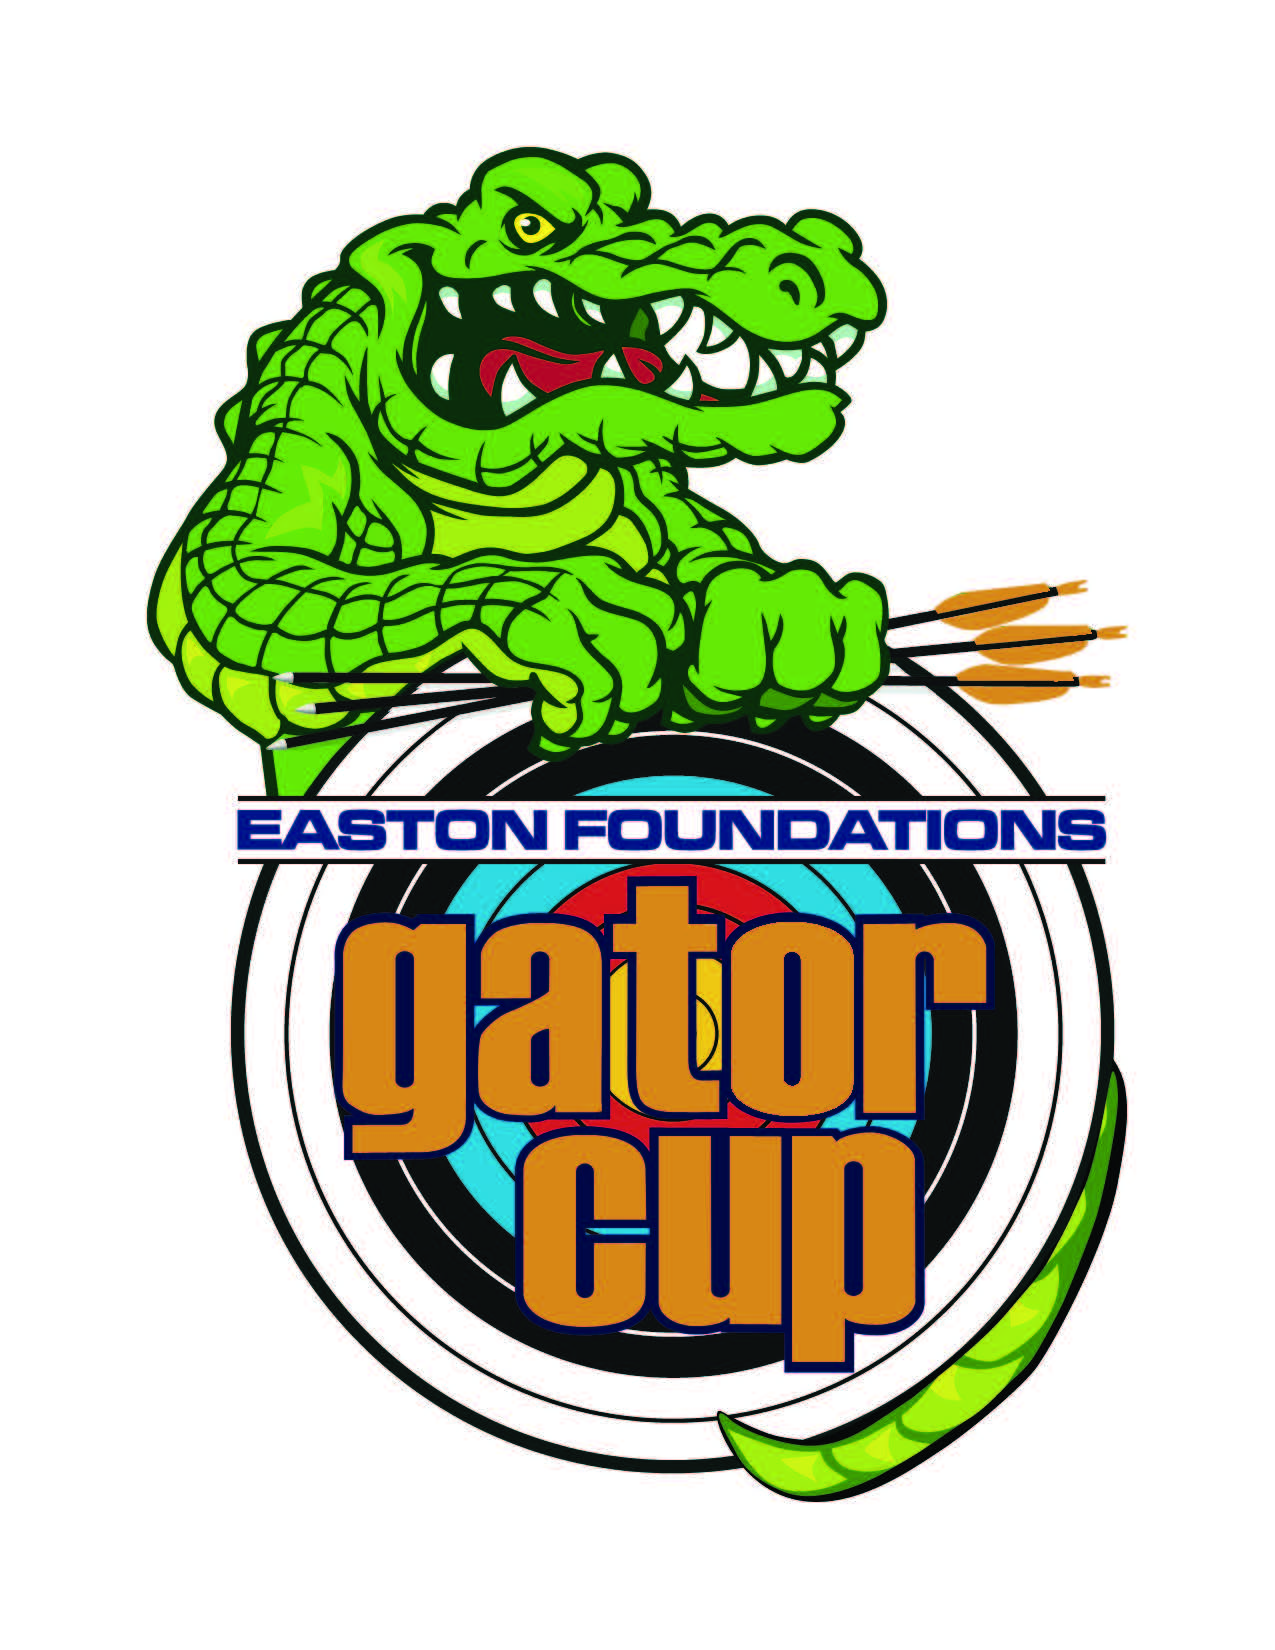 USAT #2 - 2017 Easton Foundations Gator Cup, World Team Trials and World Games Trials for Compound